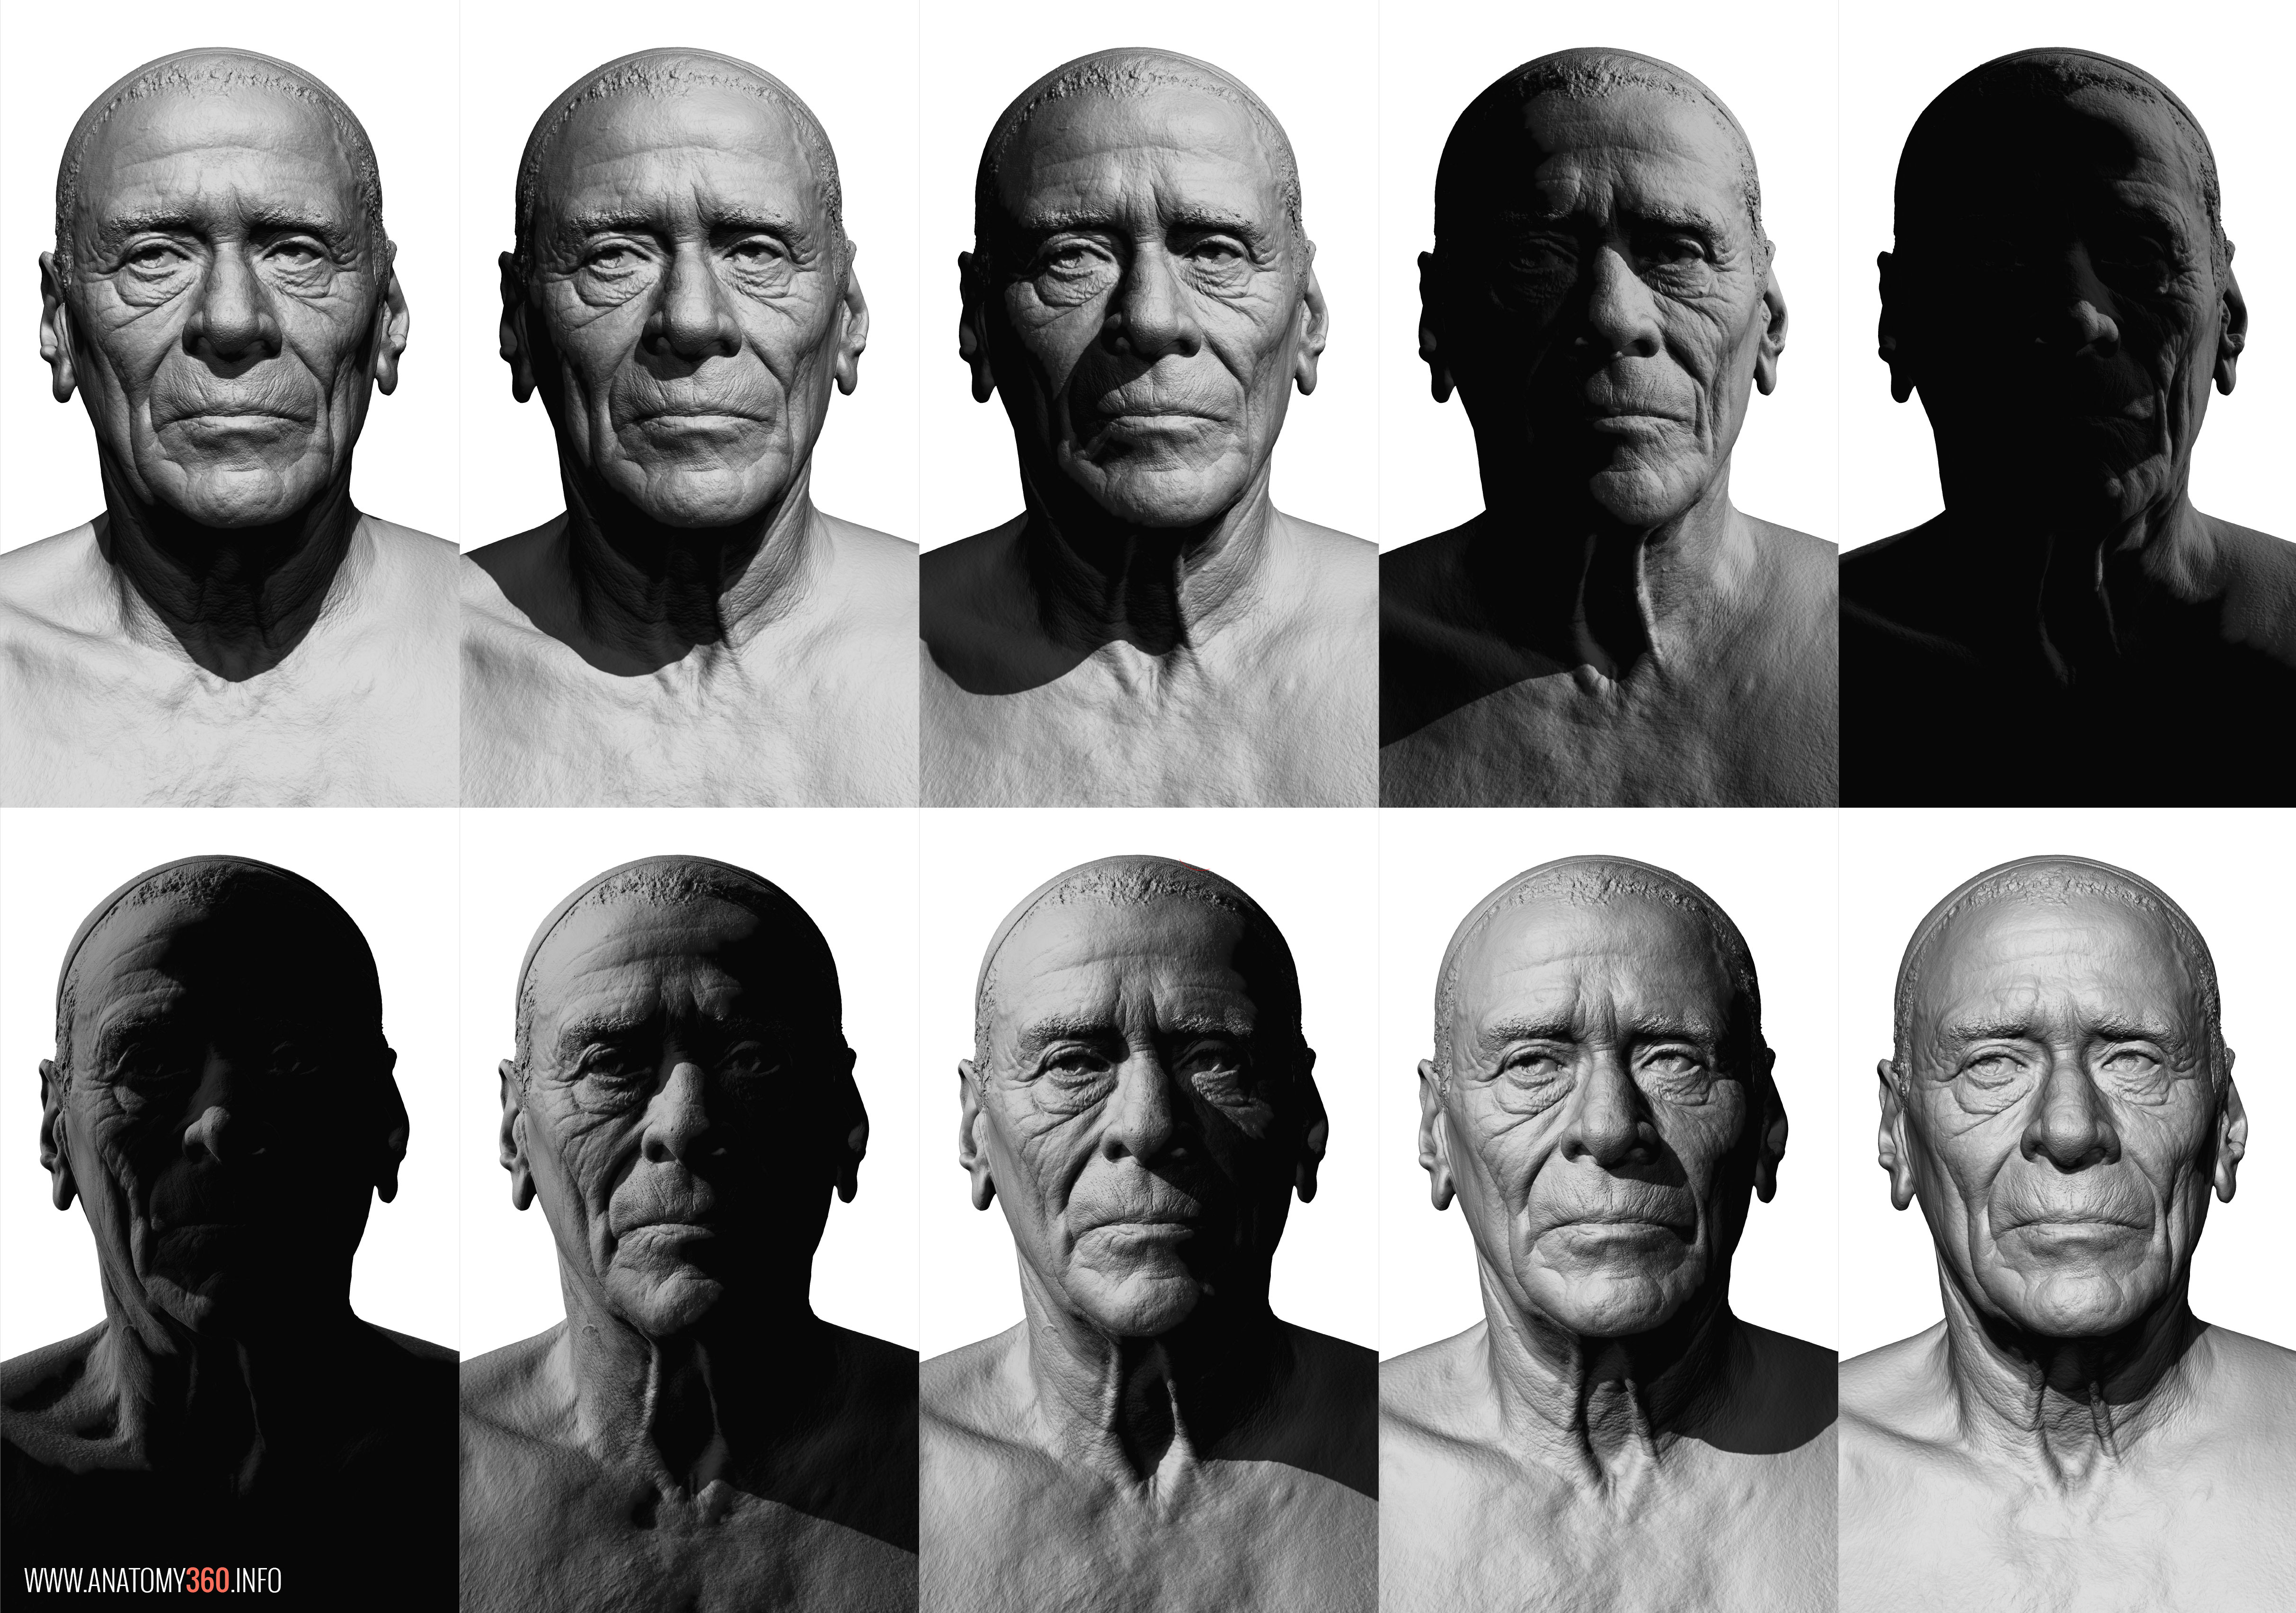 head and face reference anatomy 360